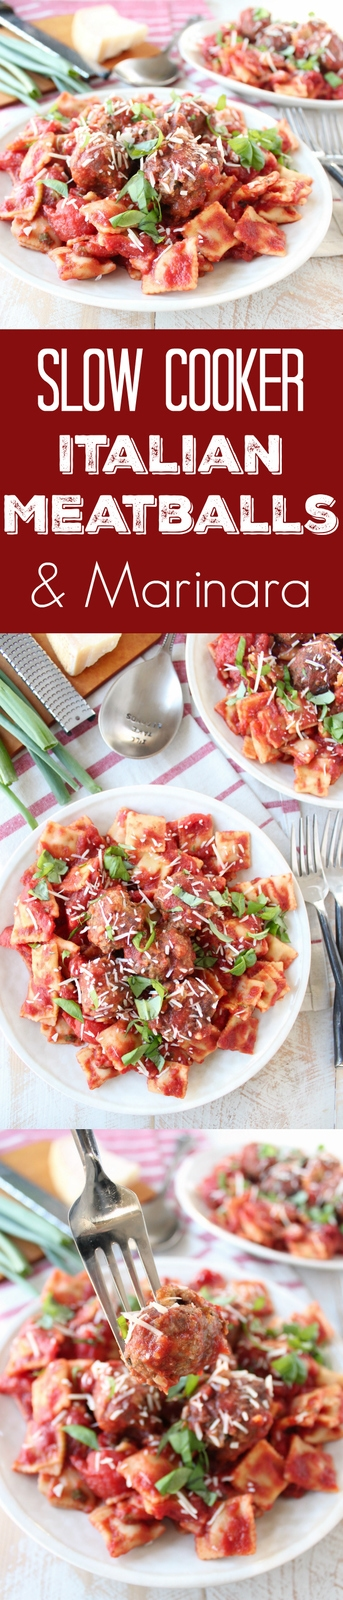 Slow Cooker Italian Meatballs & Marinara Recipe